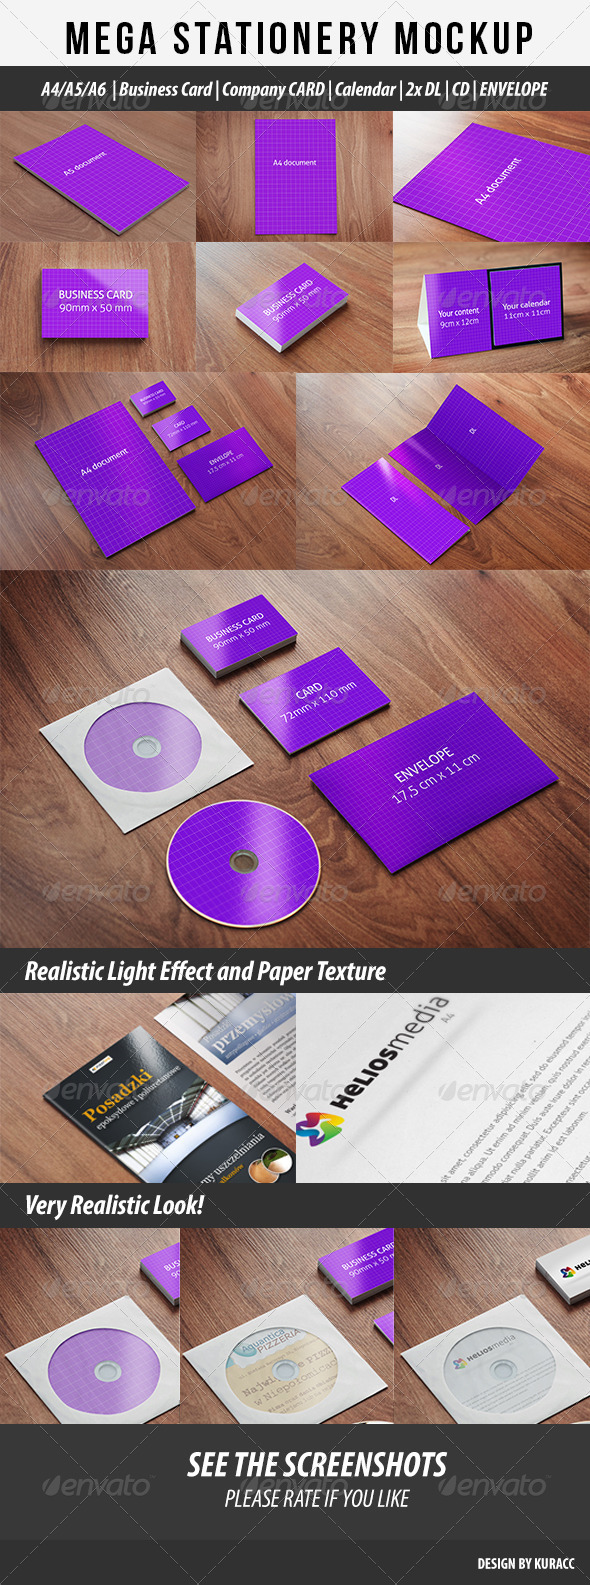 Mega Stationary Mock Up 9 in 1 - Stationery Print